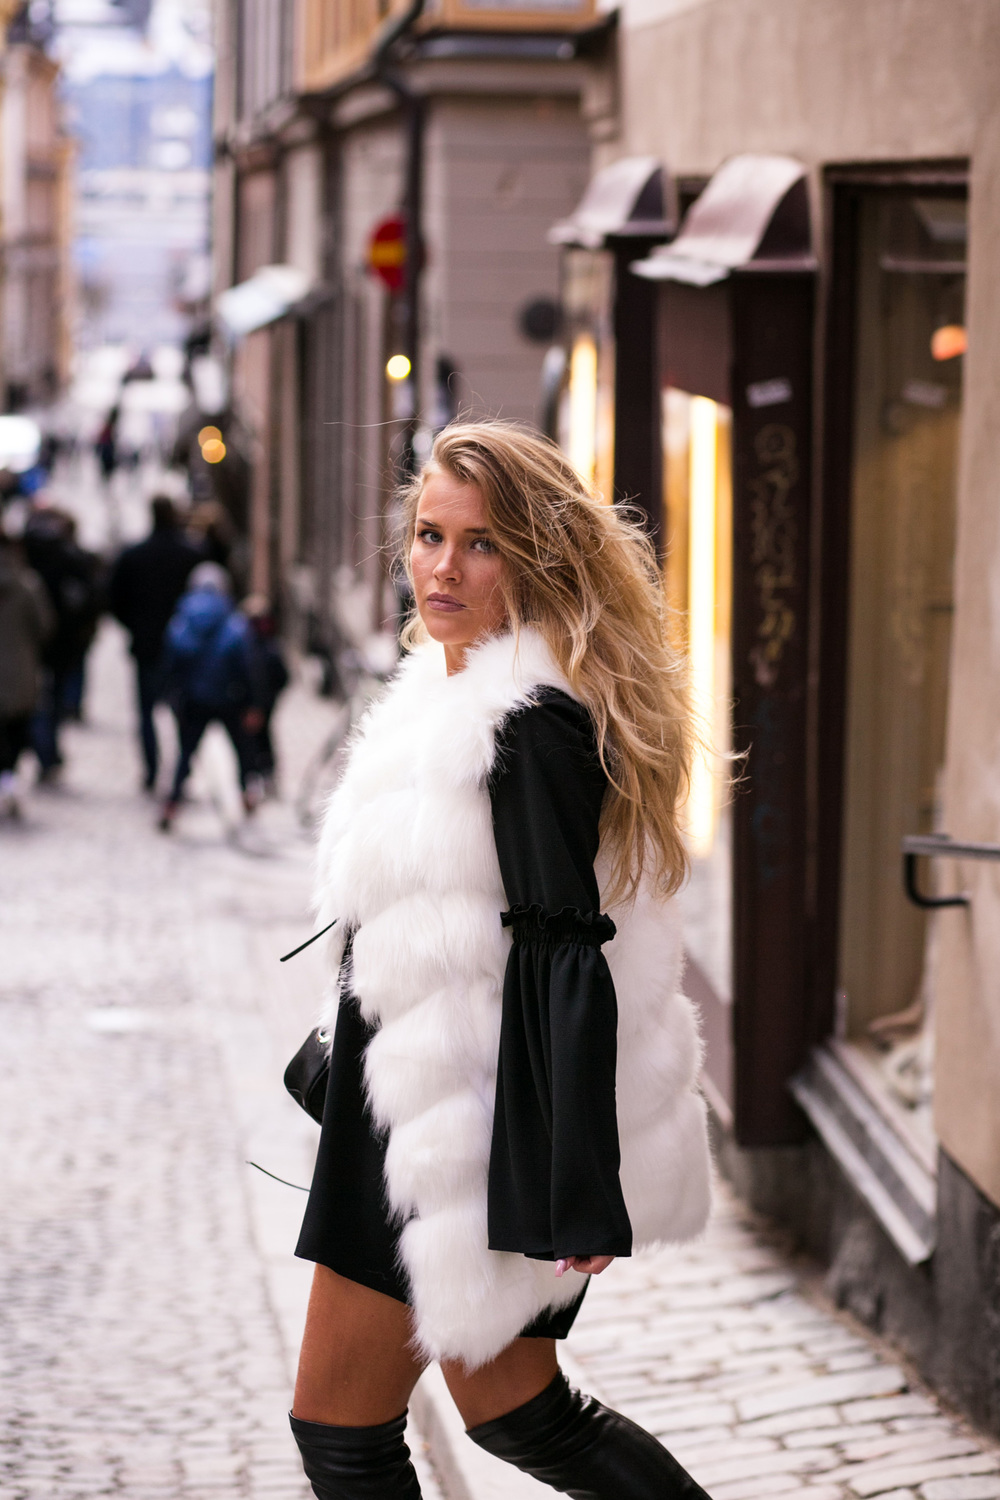 003-stockholm-blogger-fashion.jpg